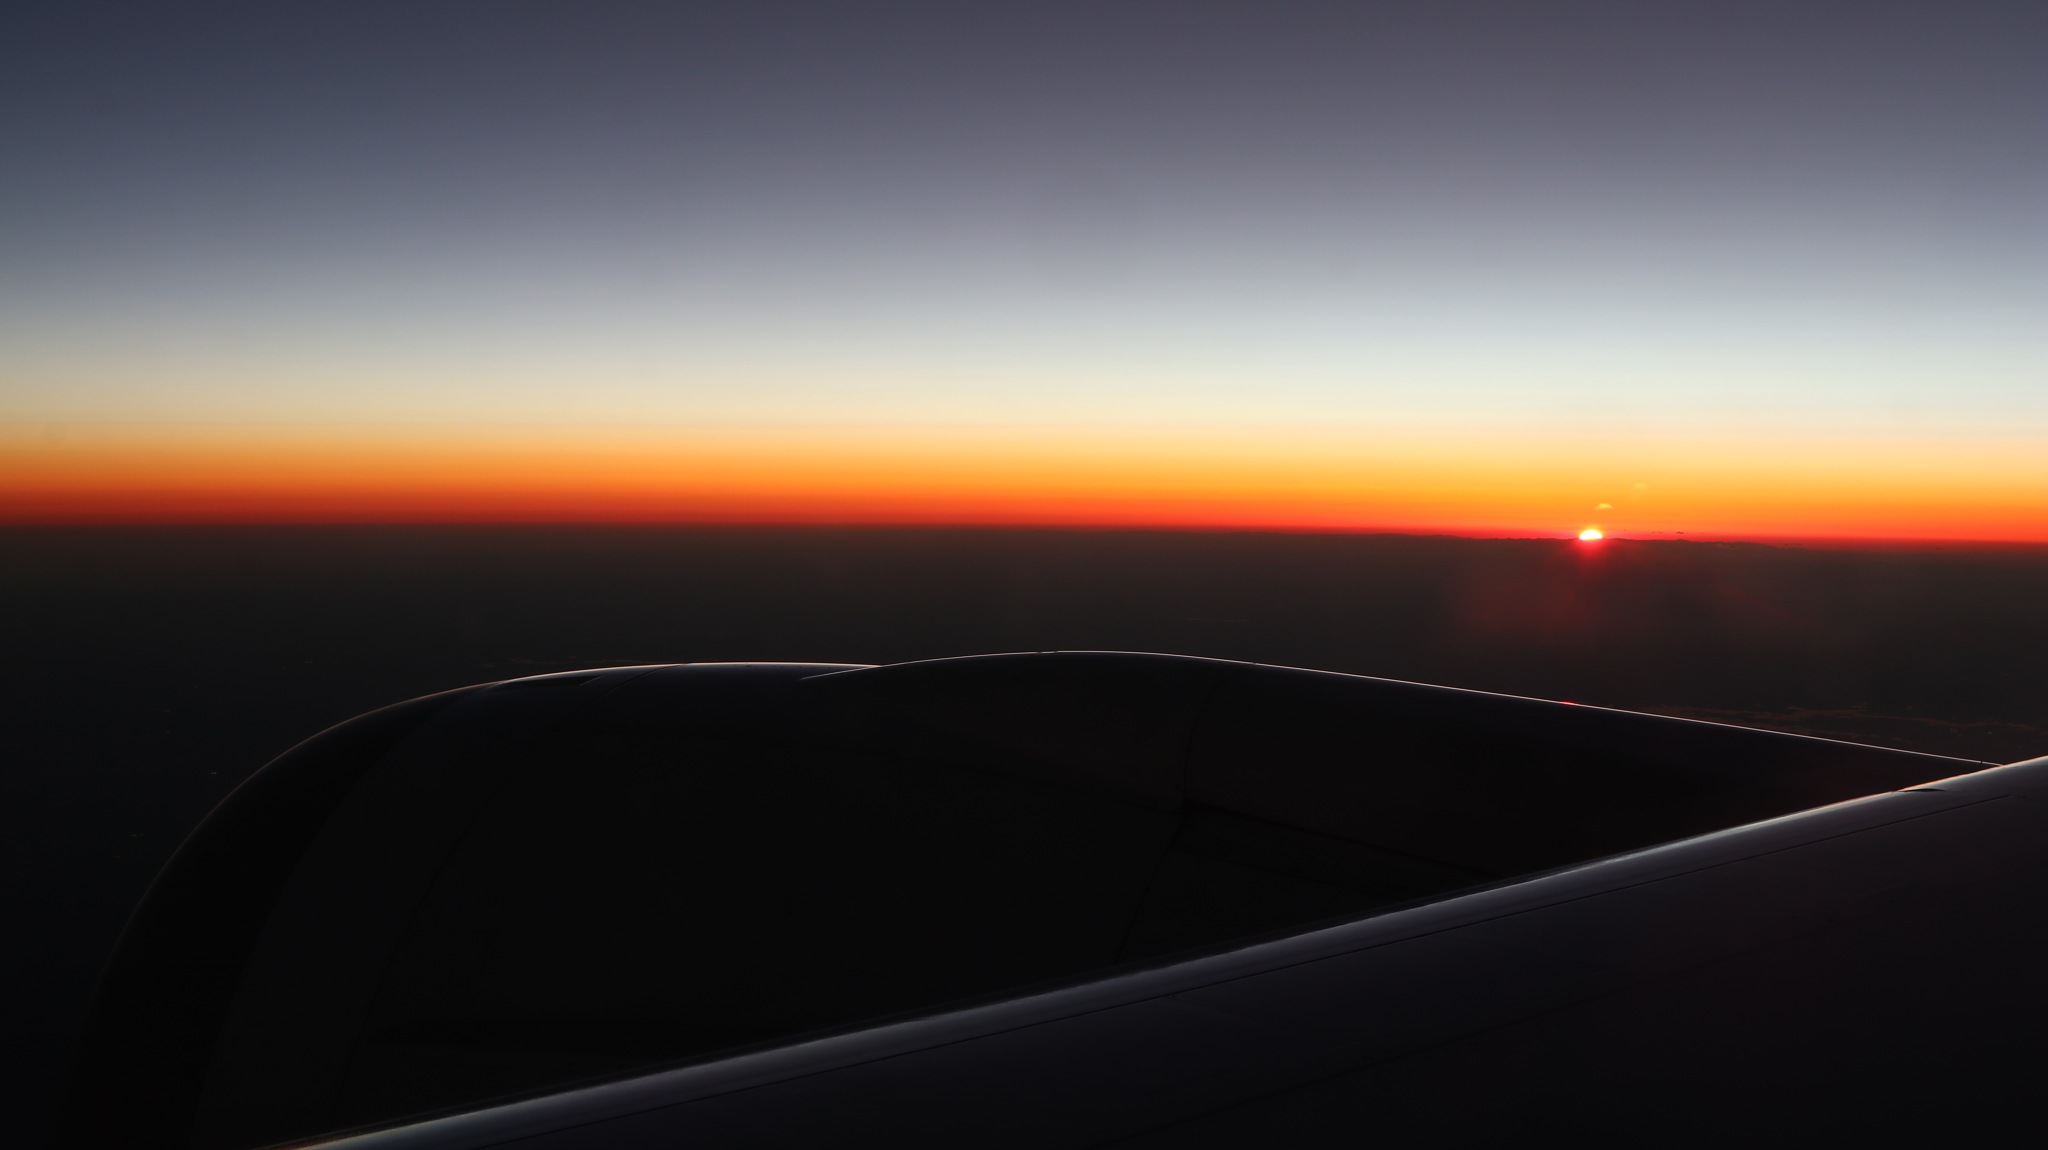 Sunrise up in the clouds!           by Alen Hajnrih